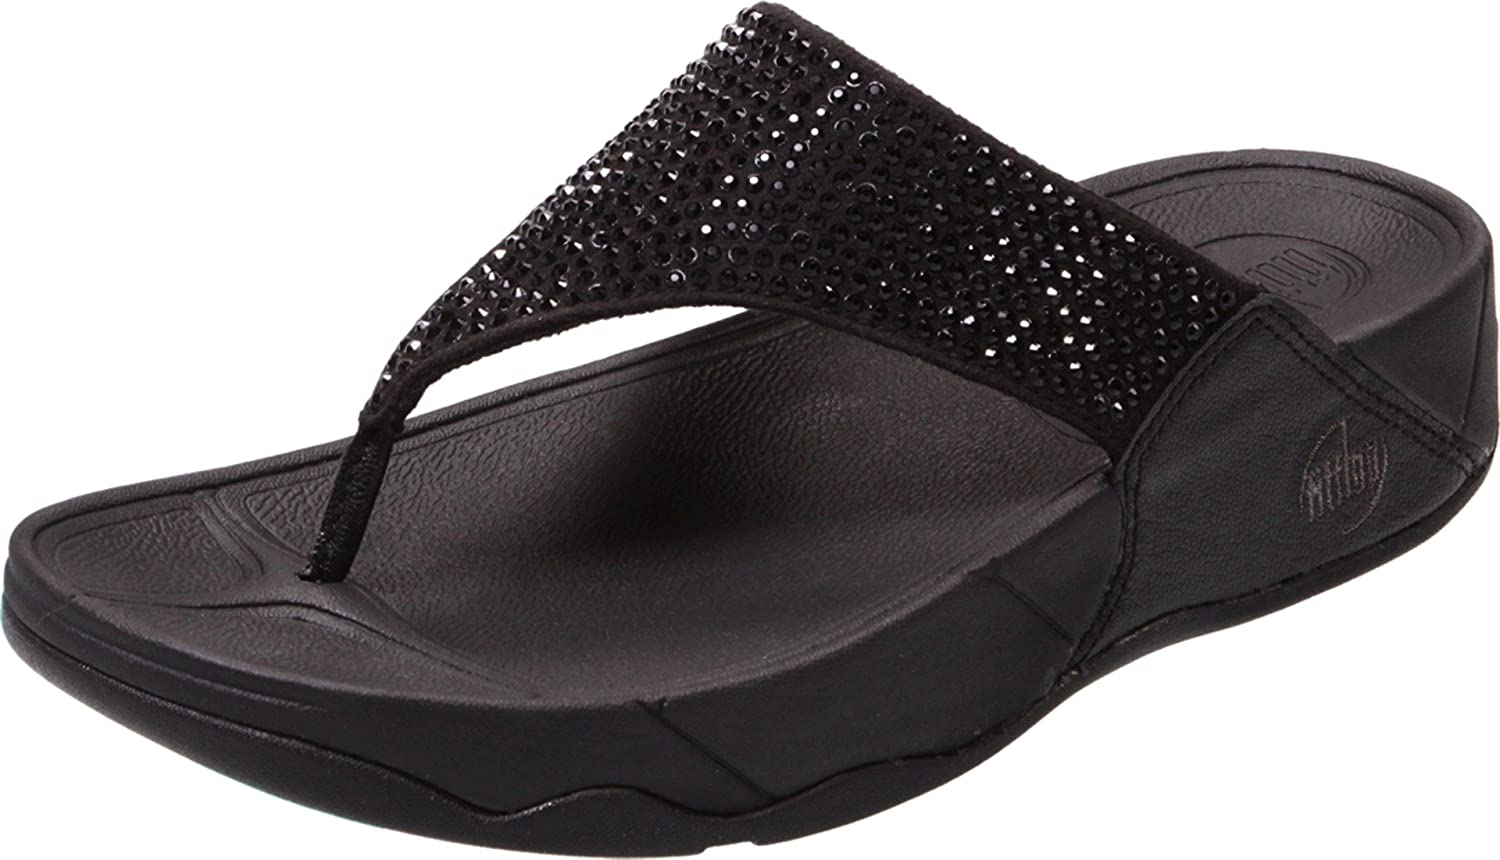 Fitflop Shoes Amazon Uk